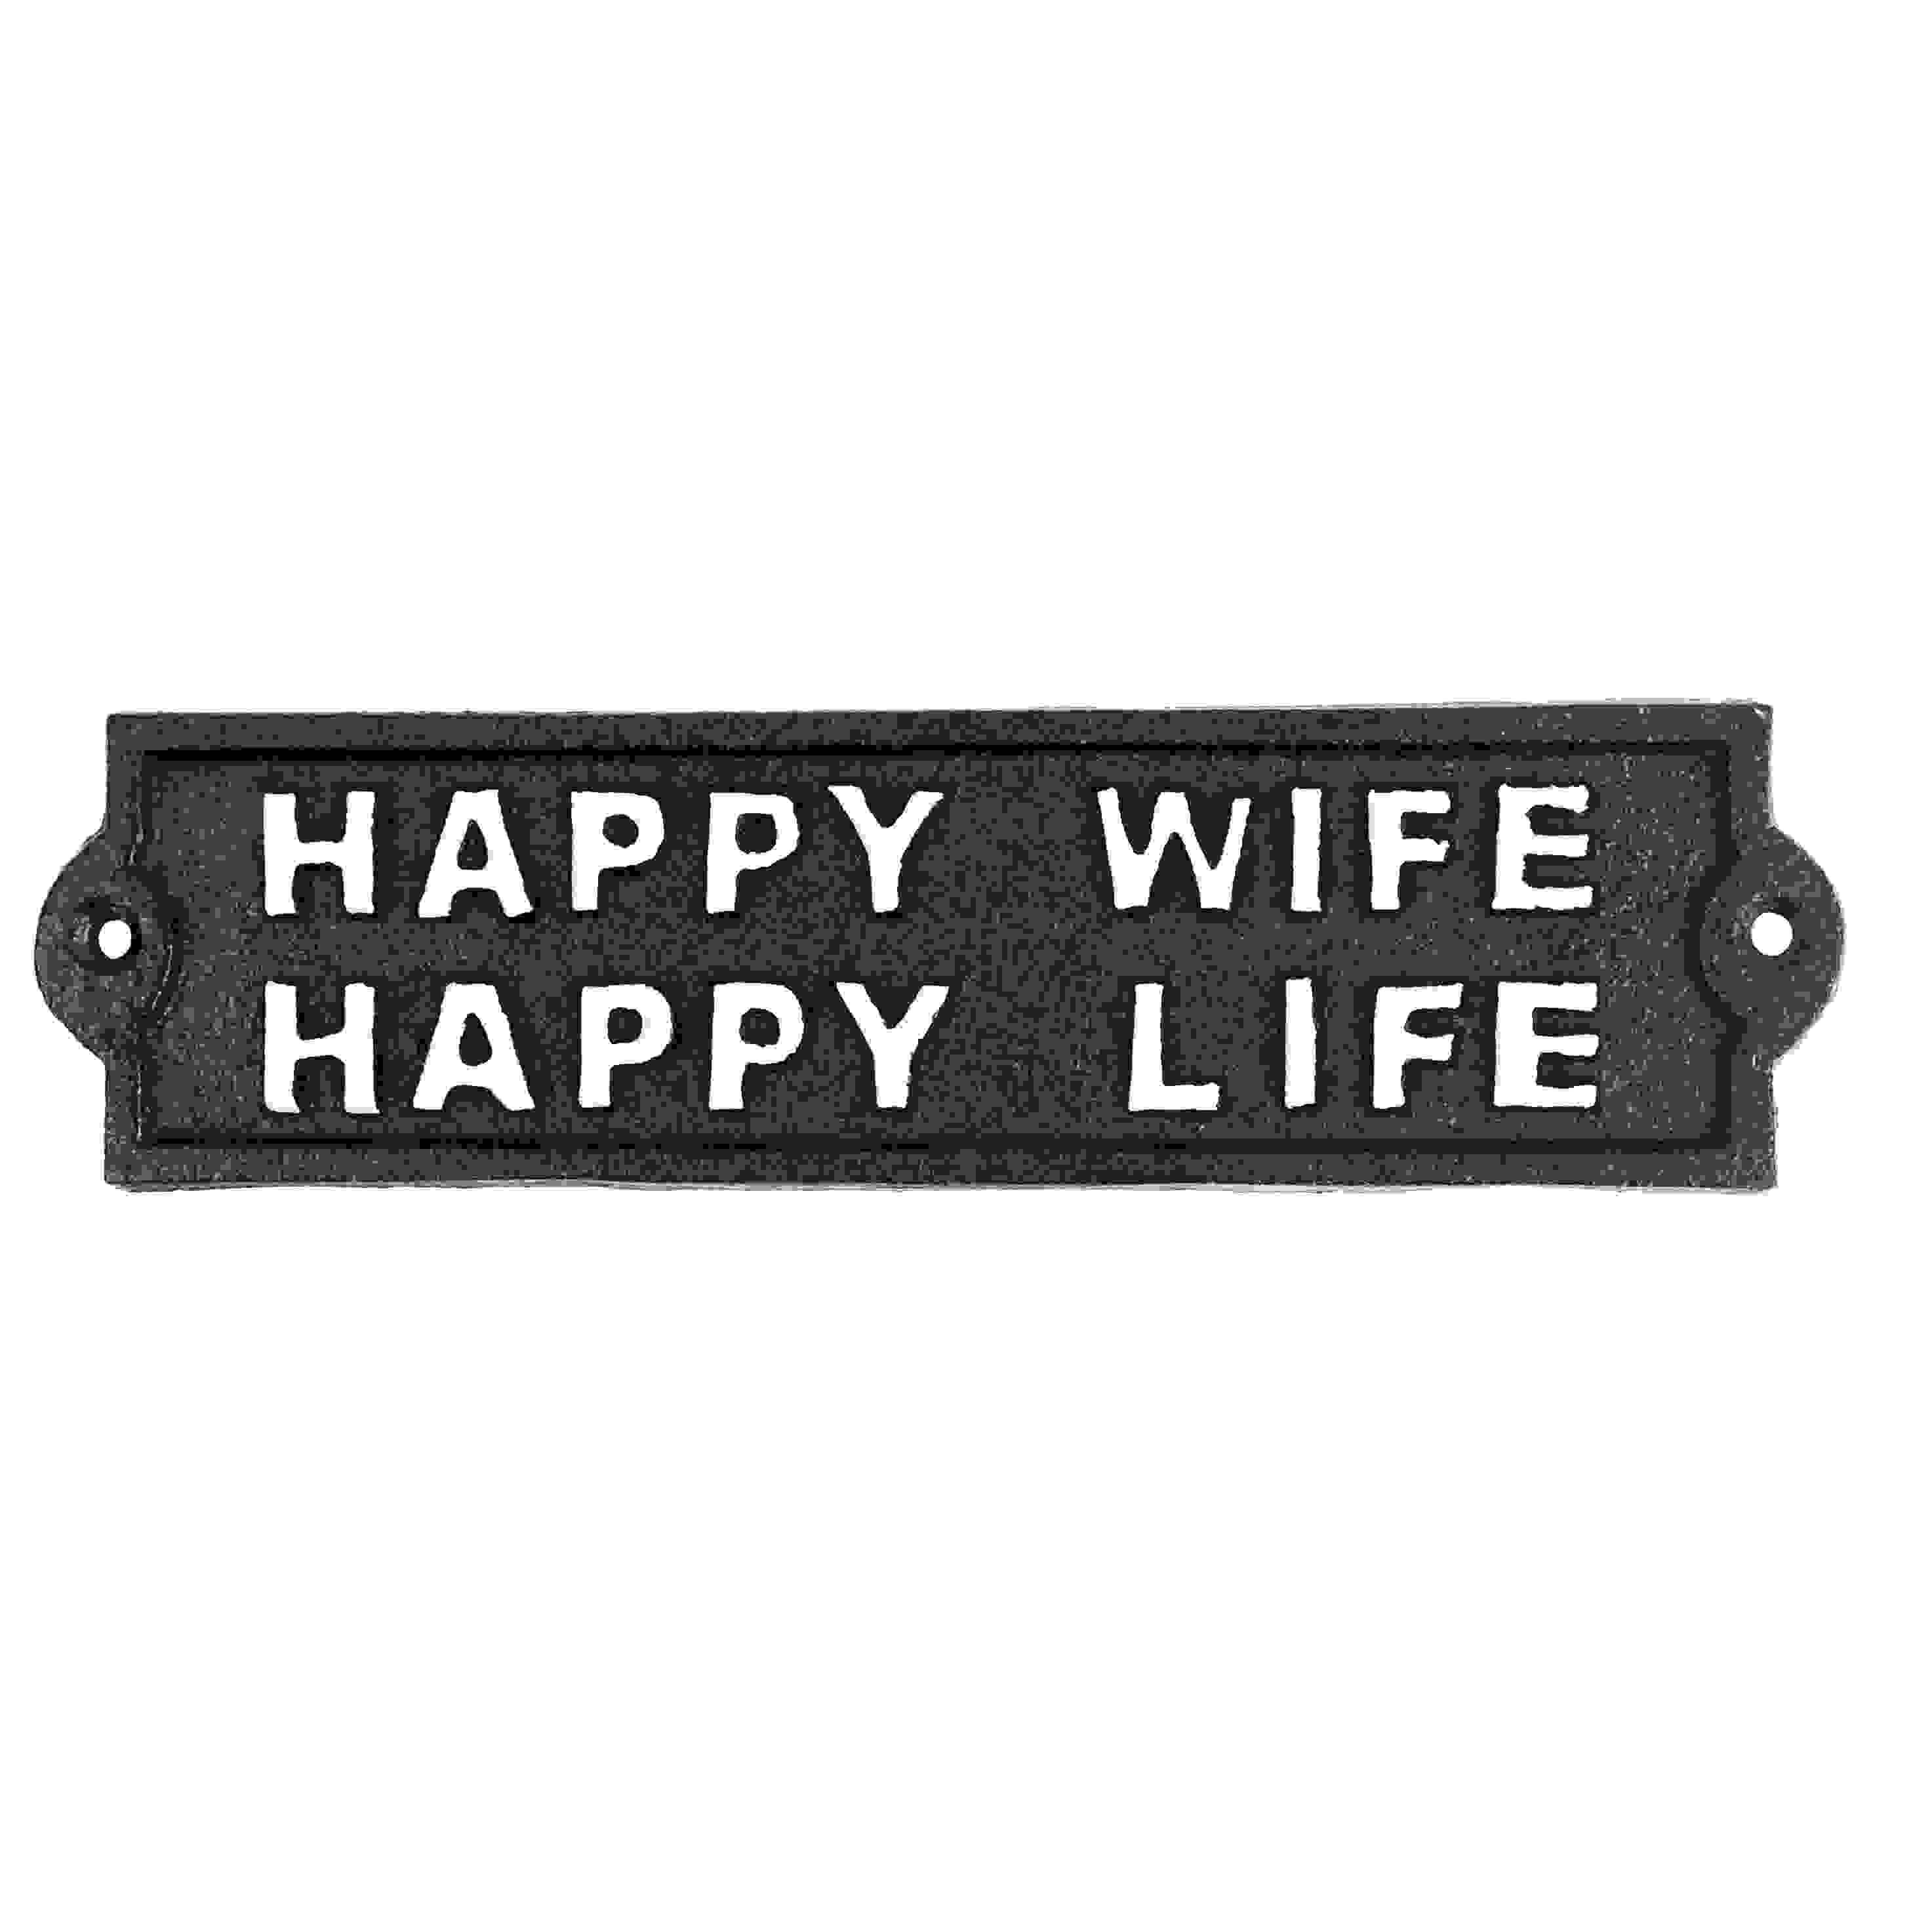 SIGN - HAPPY WIFE